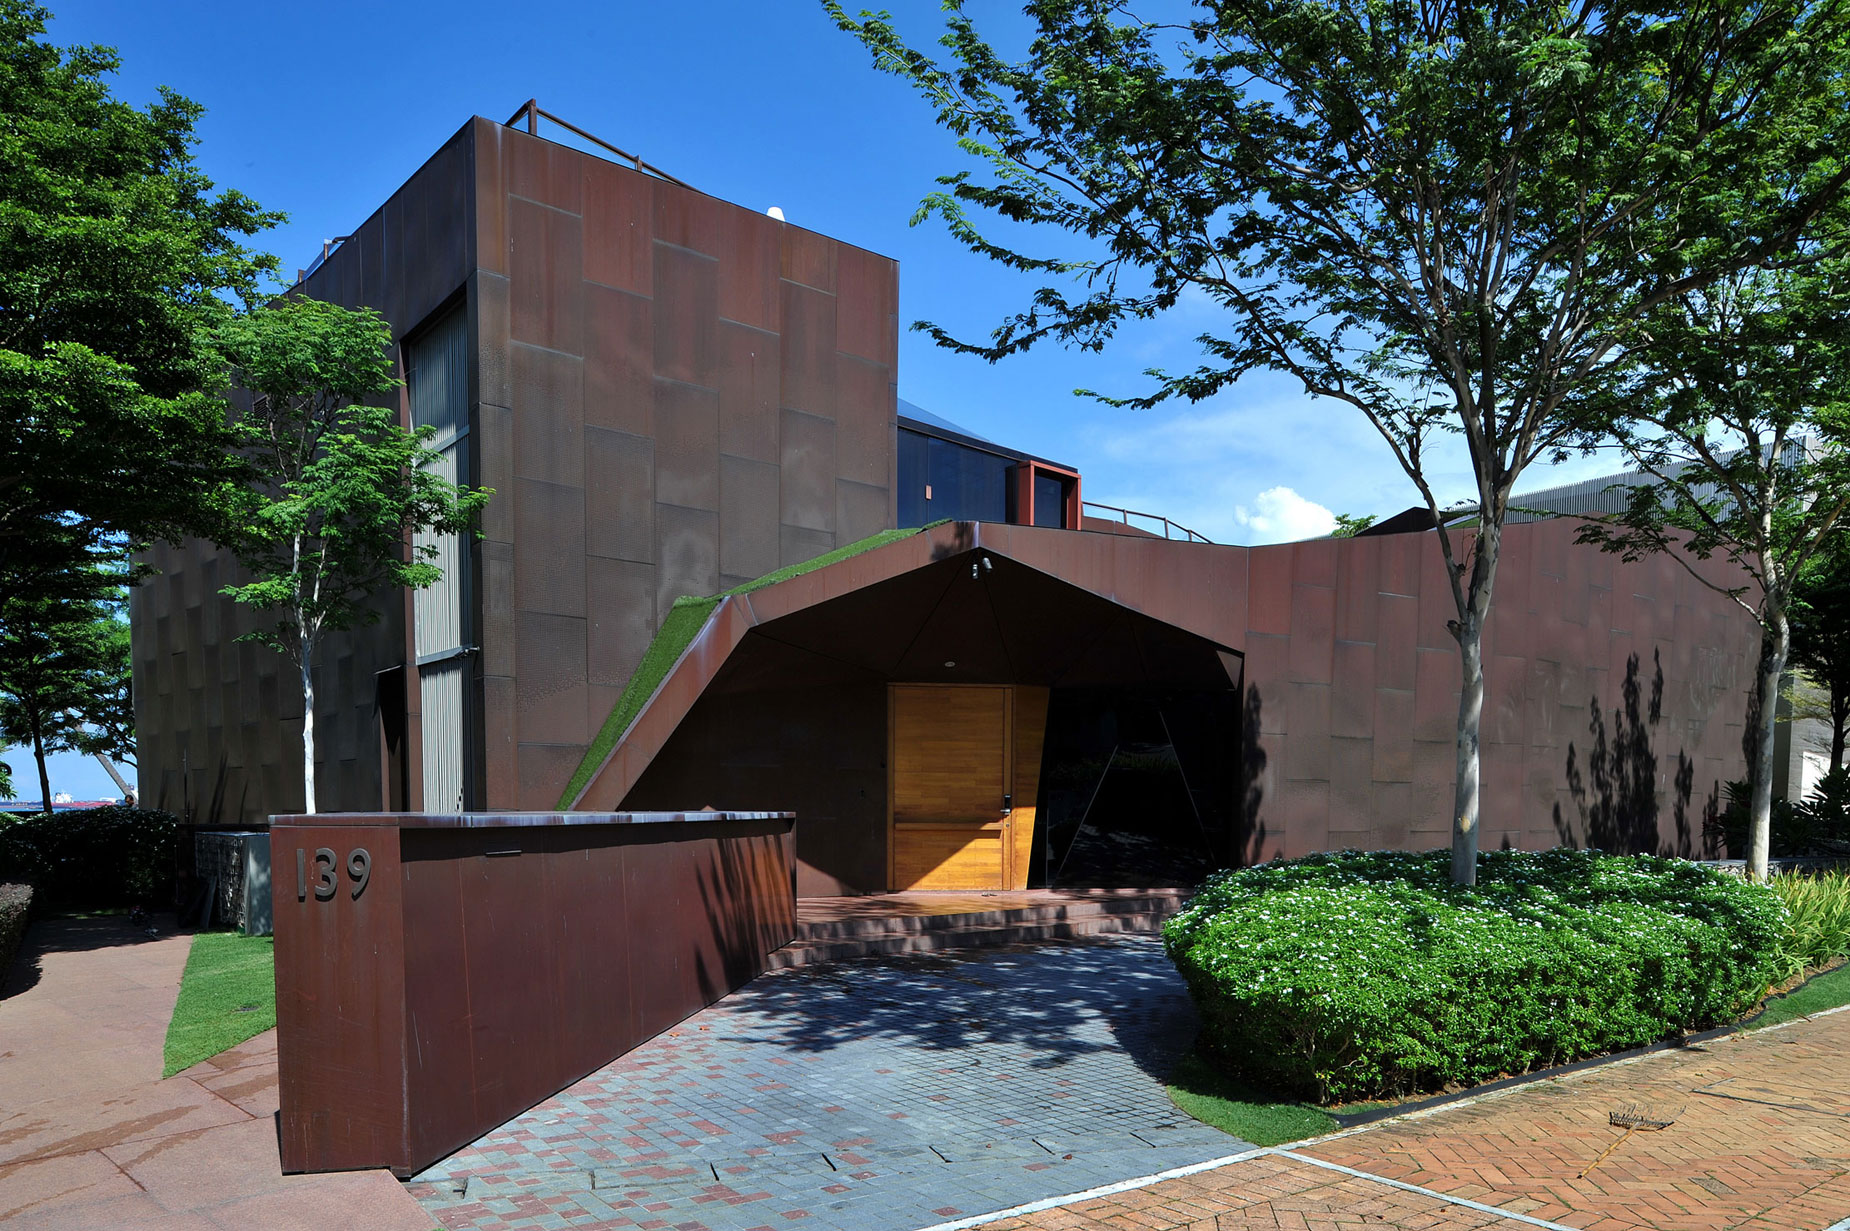 Award-winning Singapore architect Sonny Chan created this masterpiece in copper on the paradisiacal island of Sentosa.